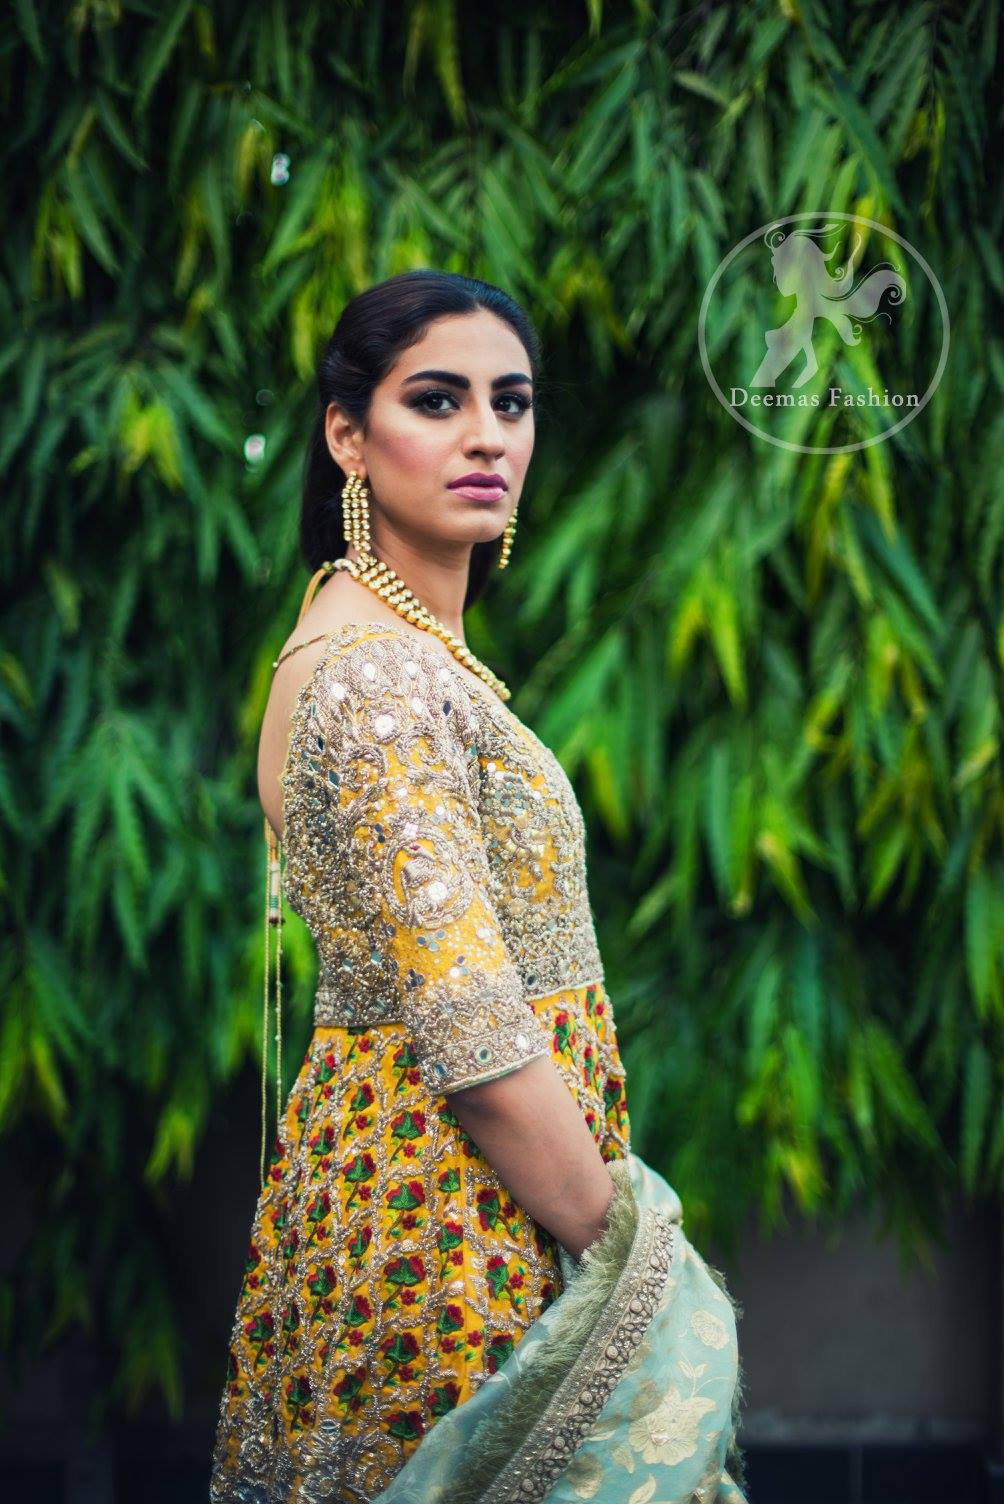 mehndi-dress-2016-yellow-short-frock-with-light-green-gharara-5